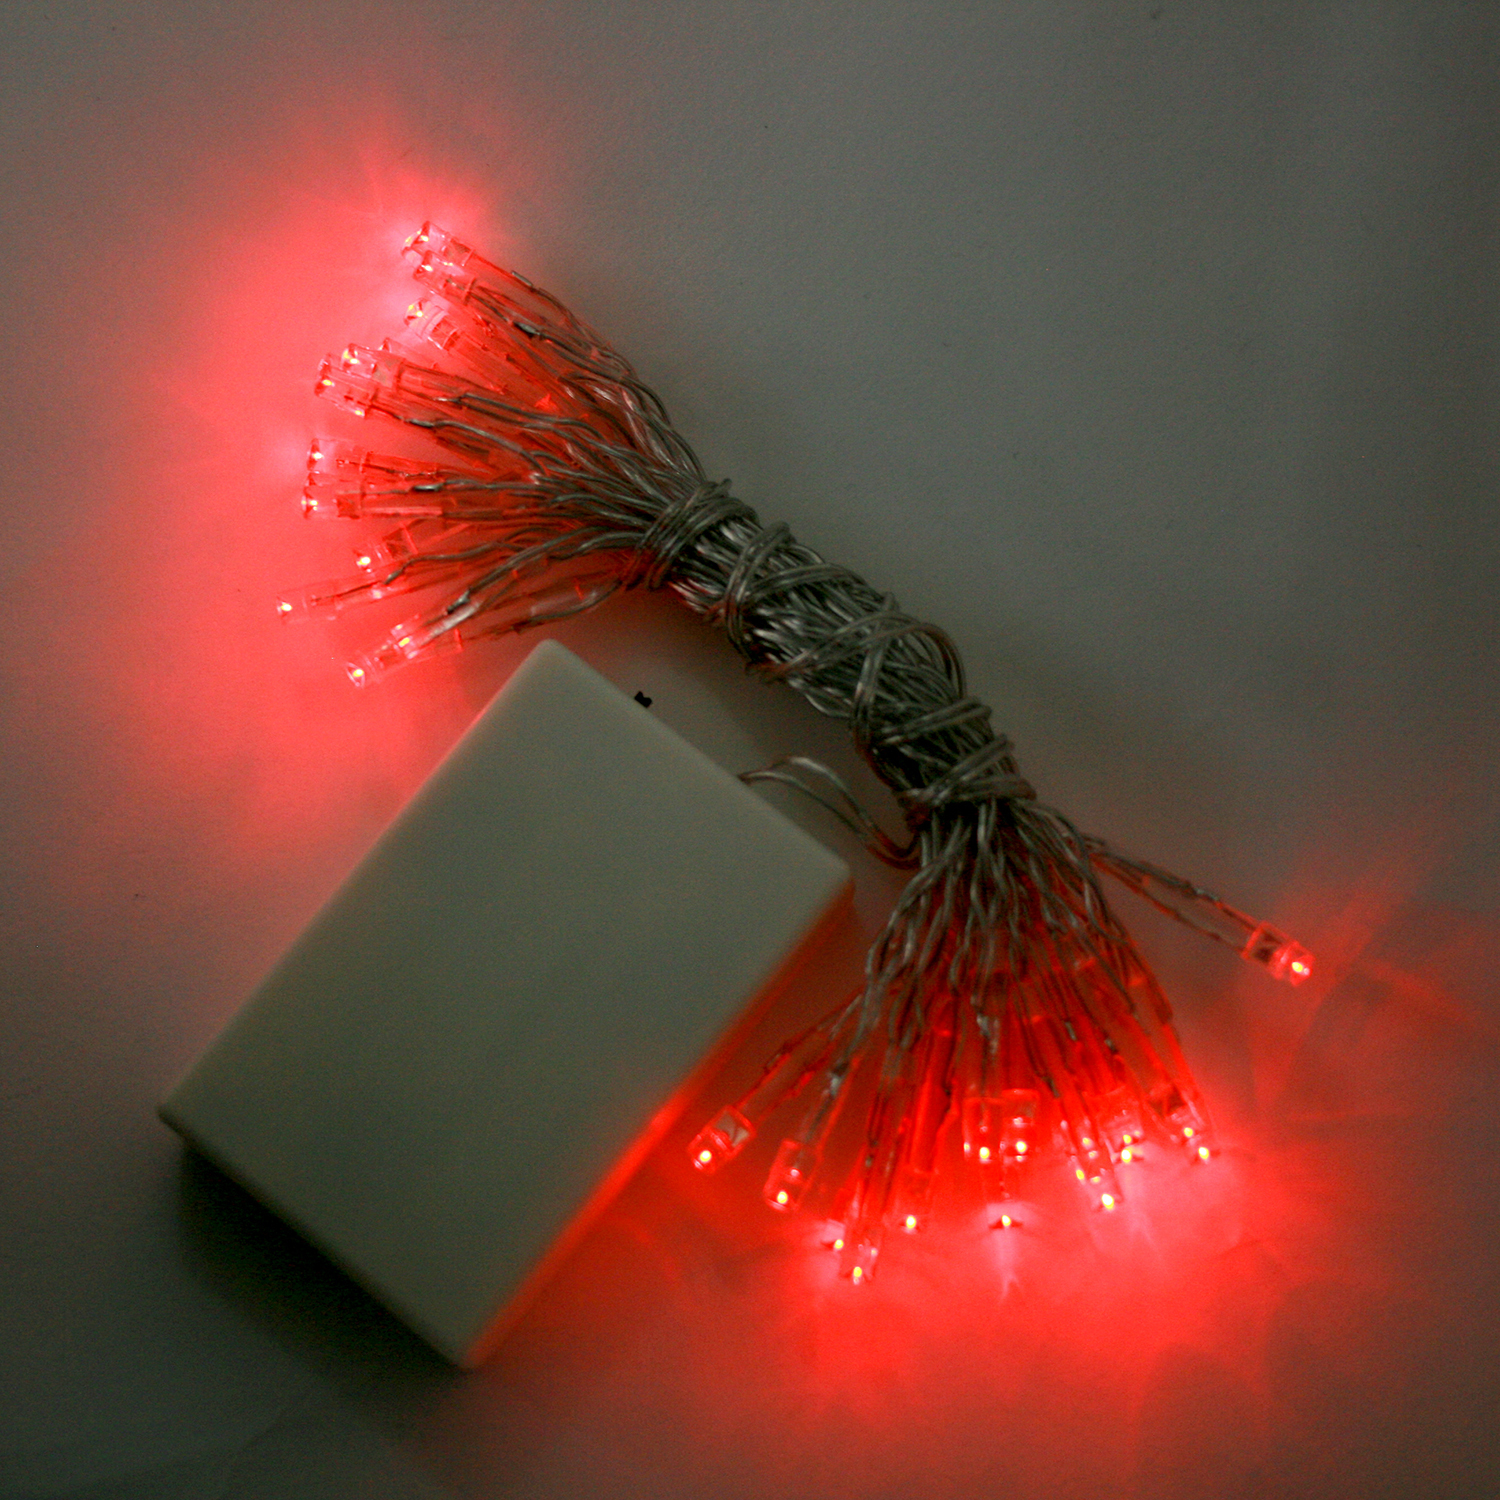 Lights.com String Lights Christmas Lights Extra Bright Red 30 LED Battery String Lights